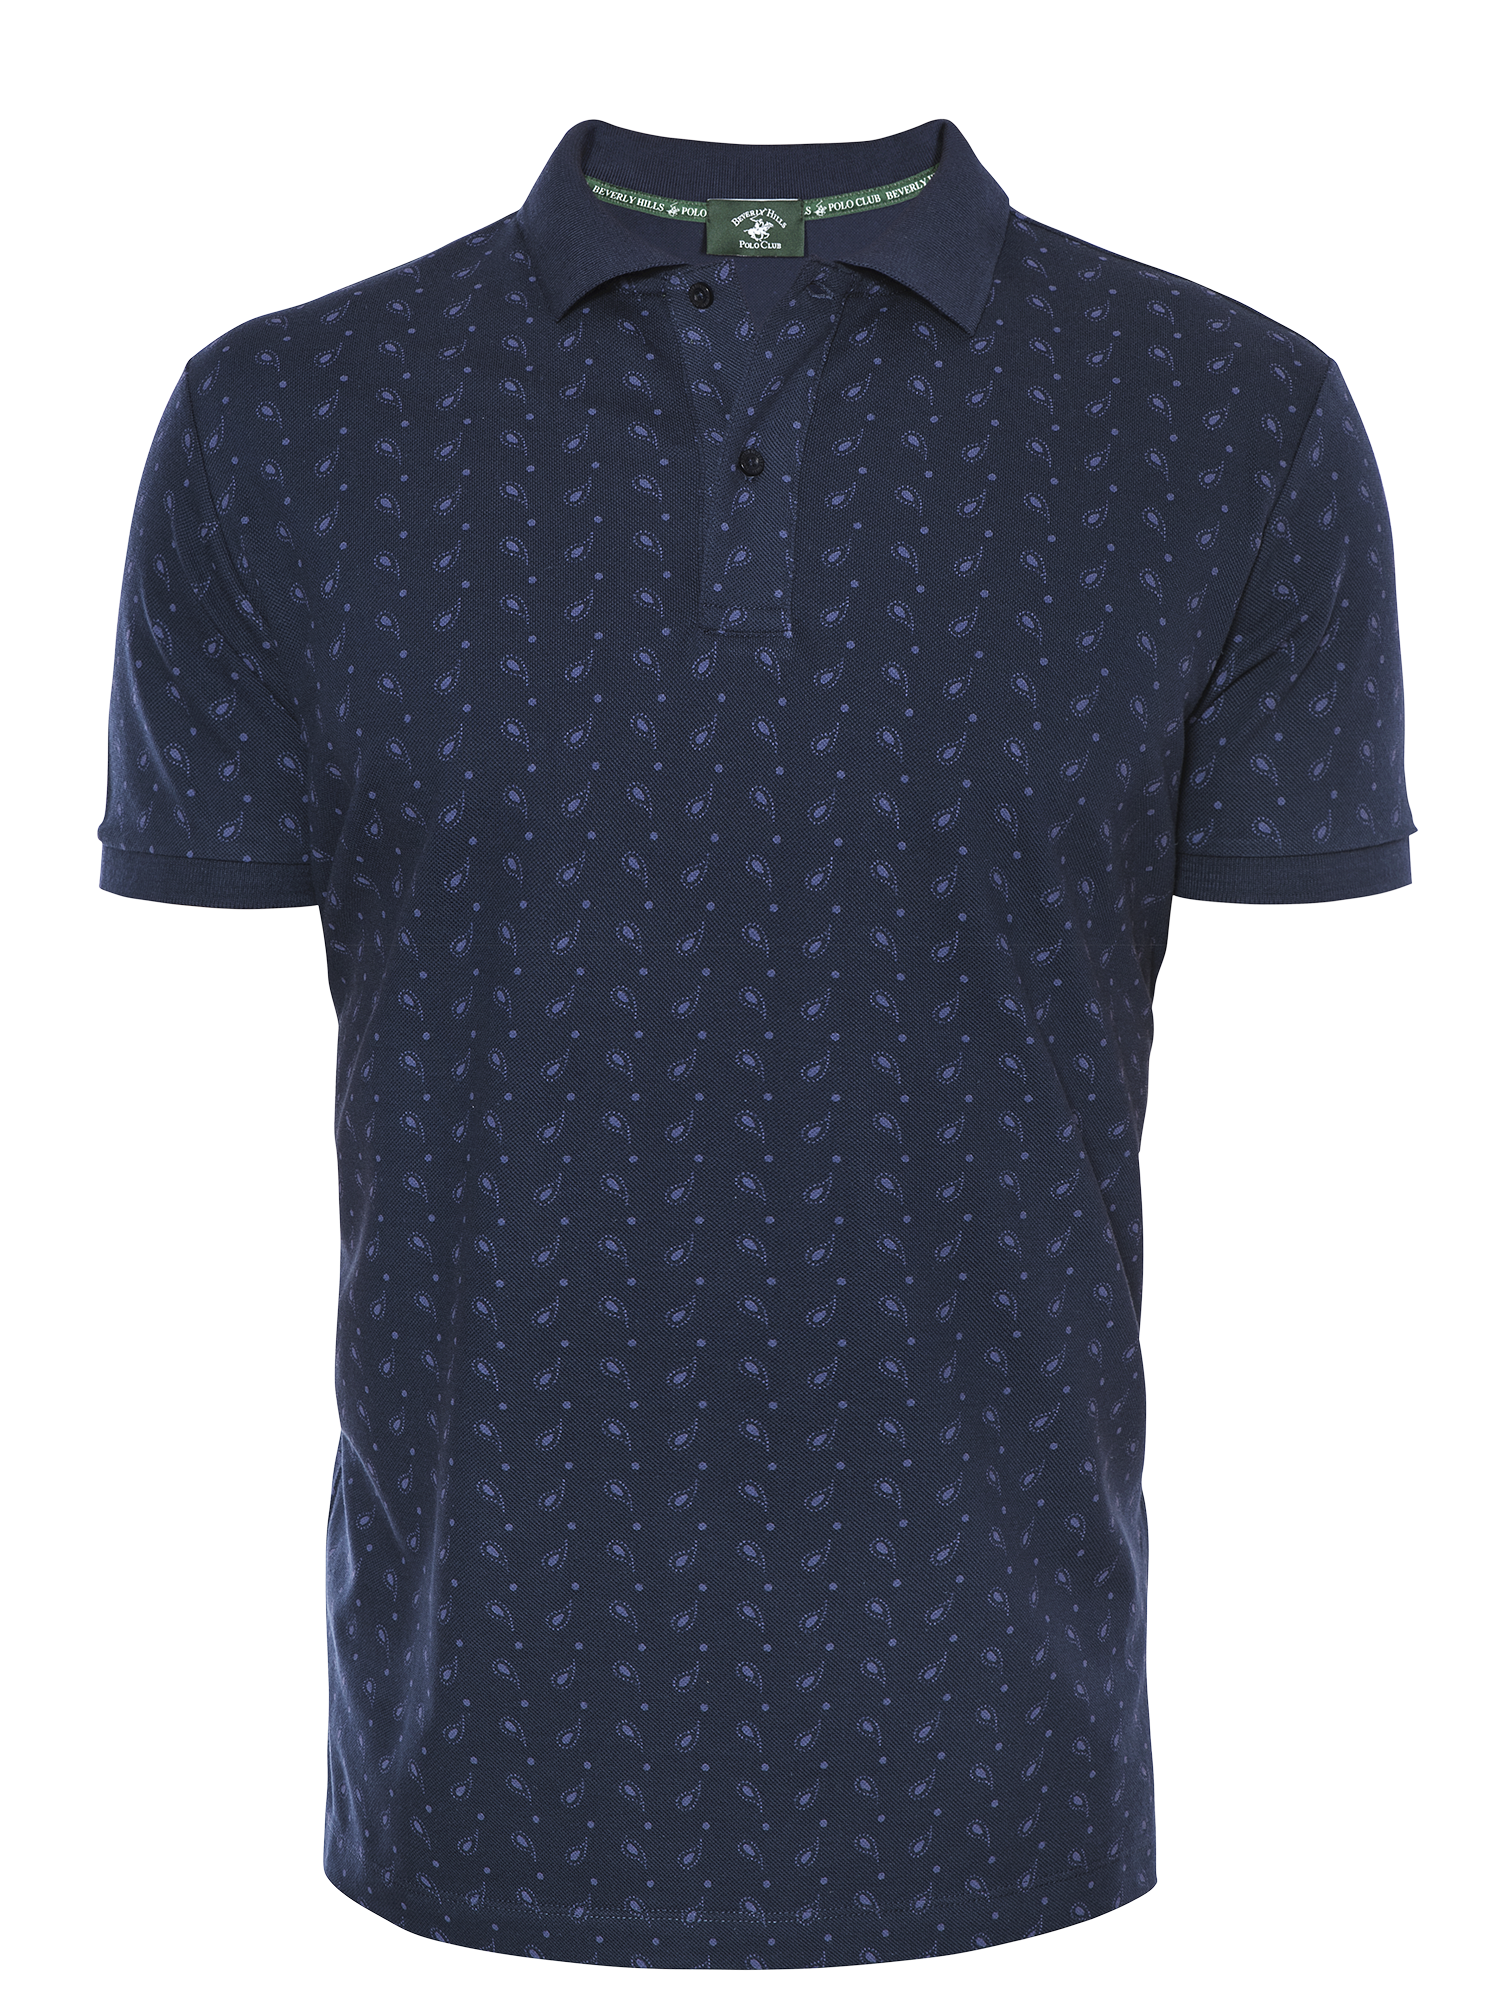 PREMIUM NAVY FASHION REGULAR FIT PIQUÉ